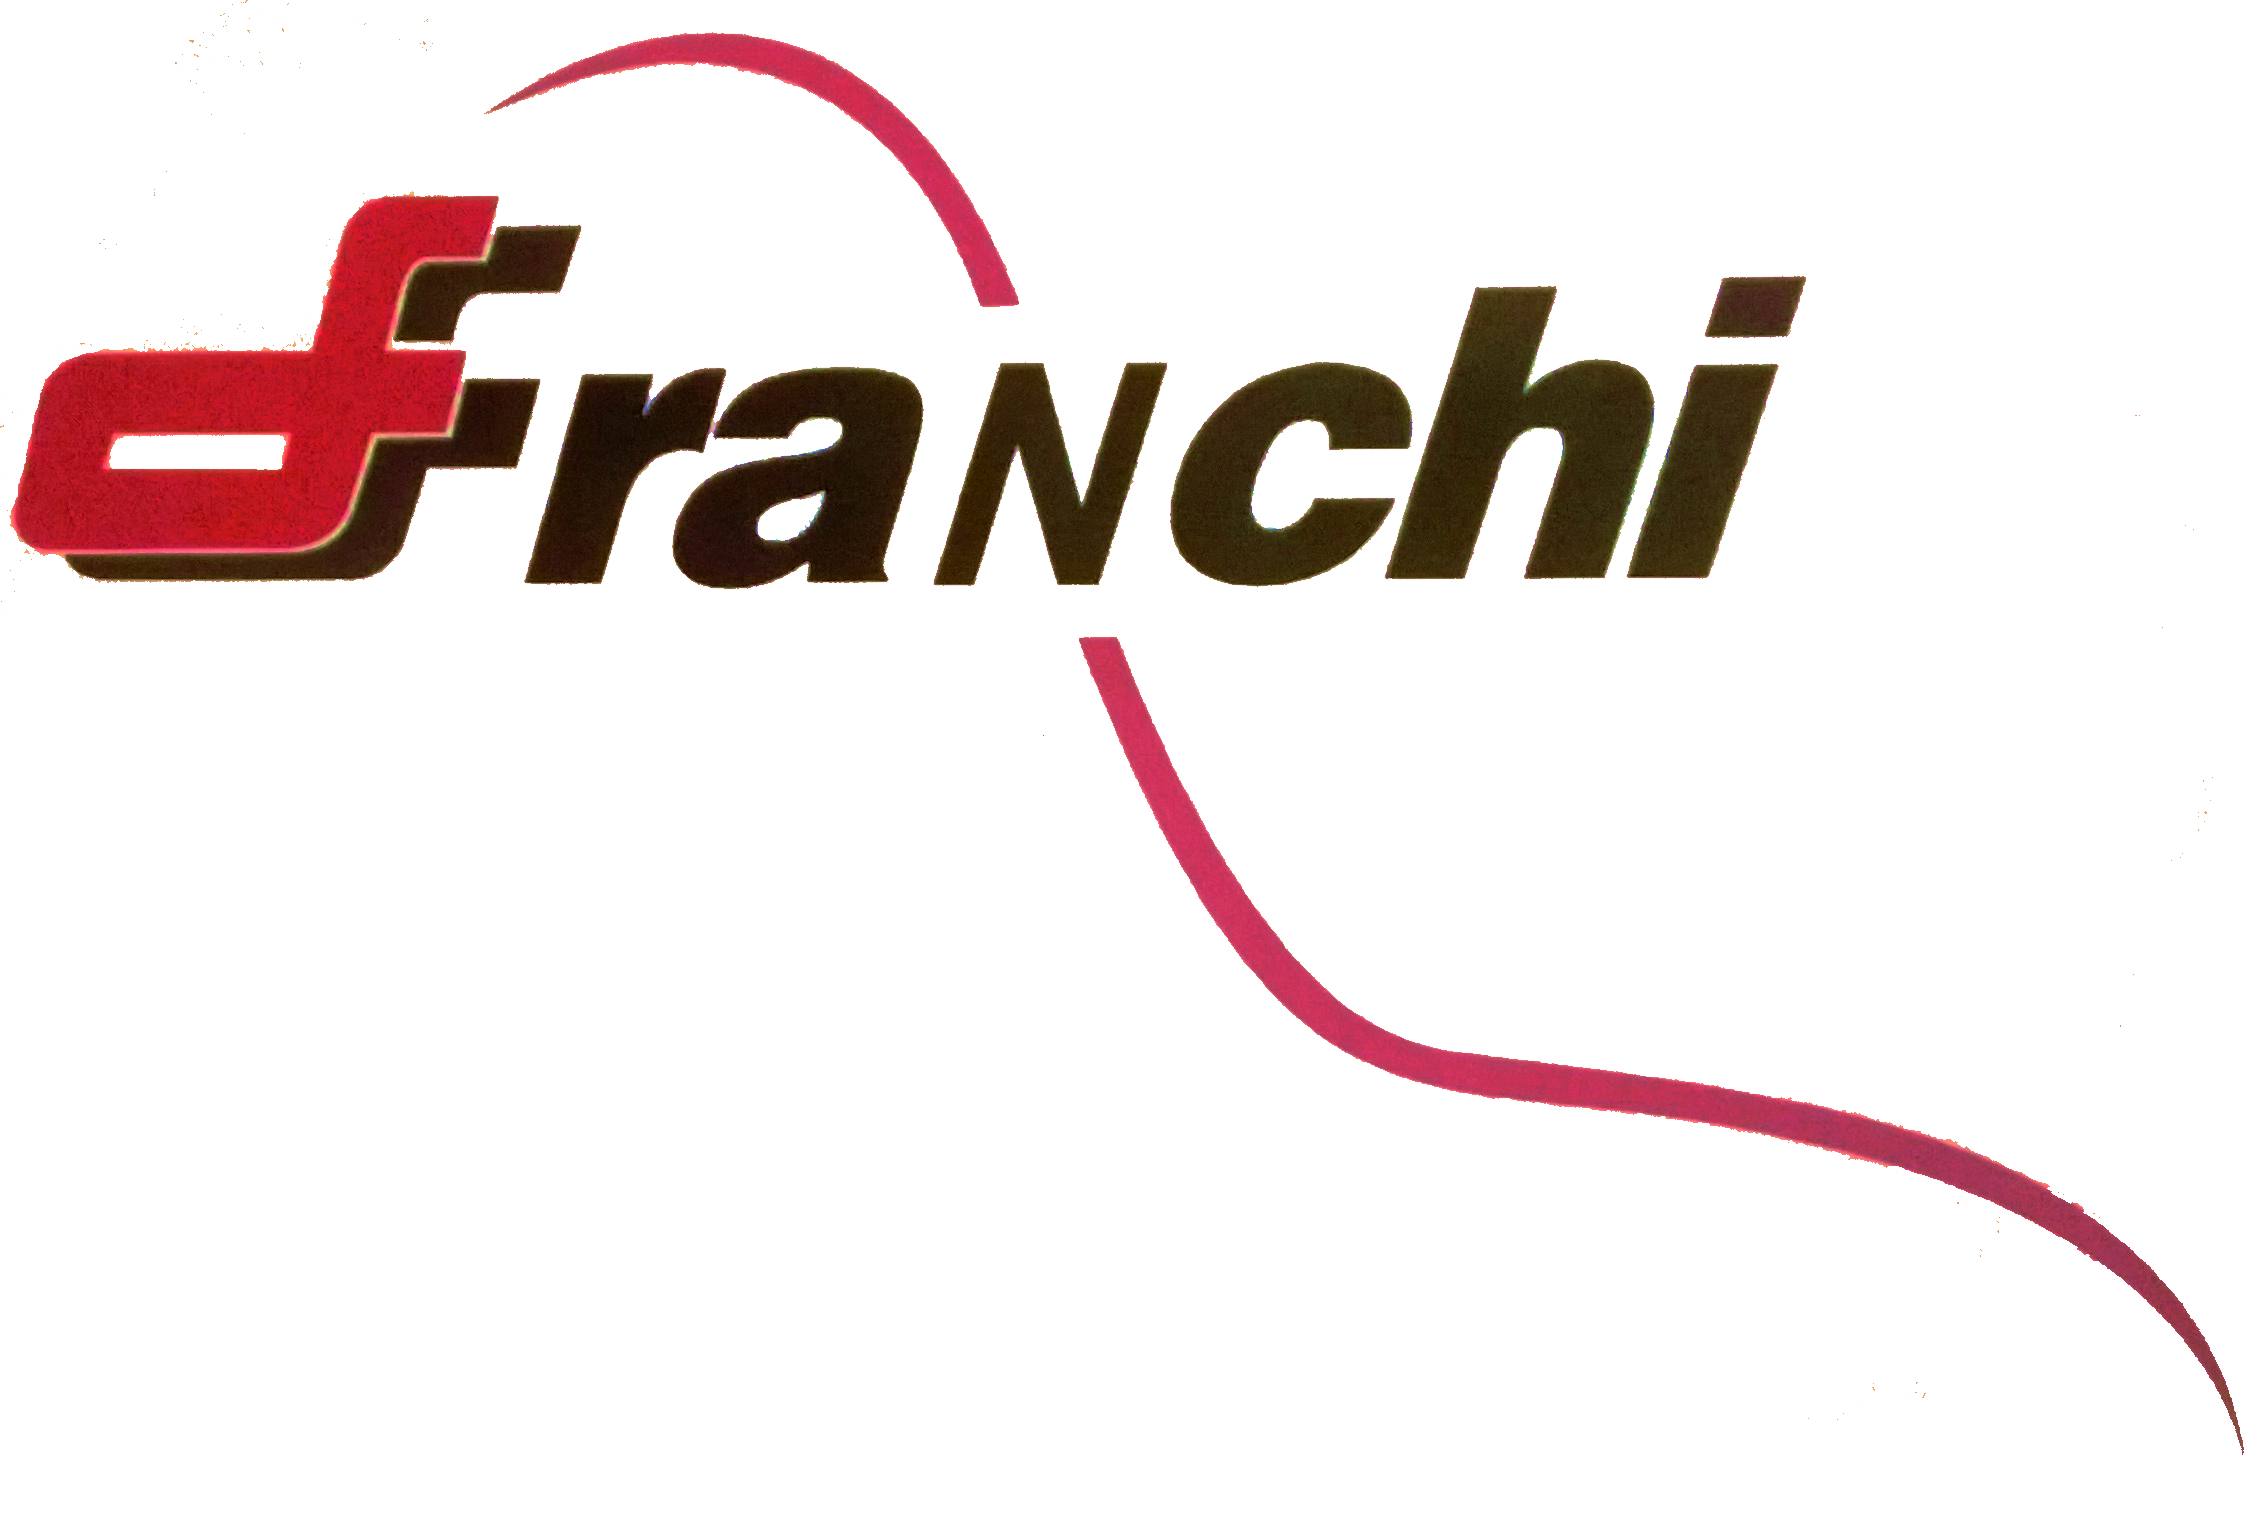 logo franchipoltrone